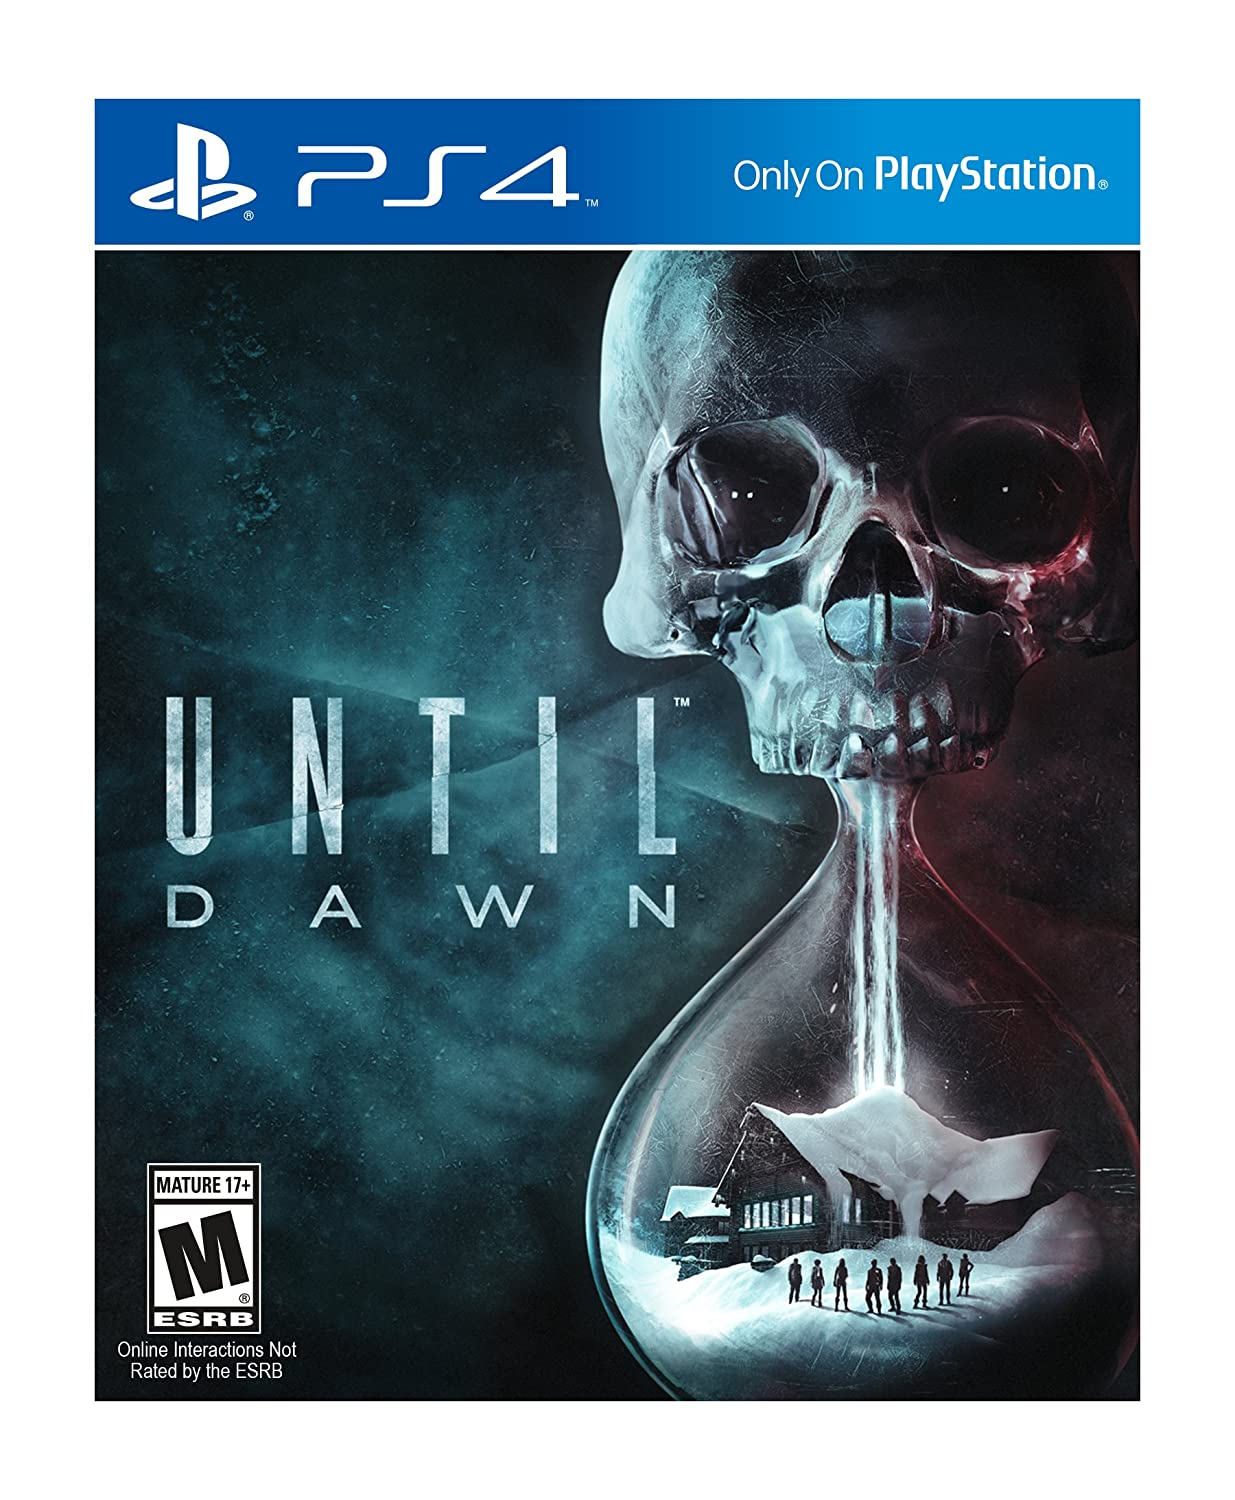 PS4 Until Dawn: playstation_4: Computer and Video Games - Amazon.ca